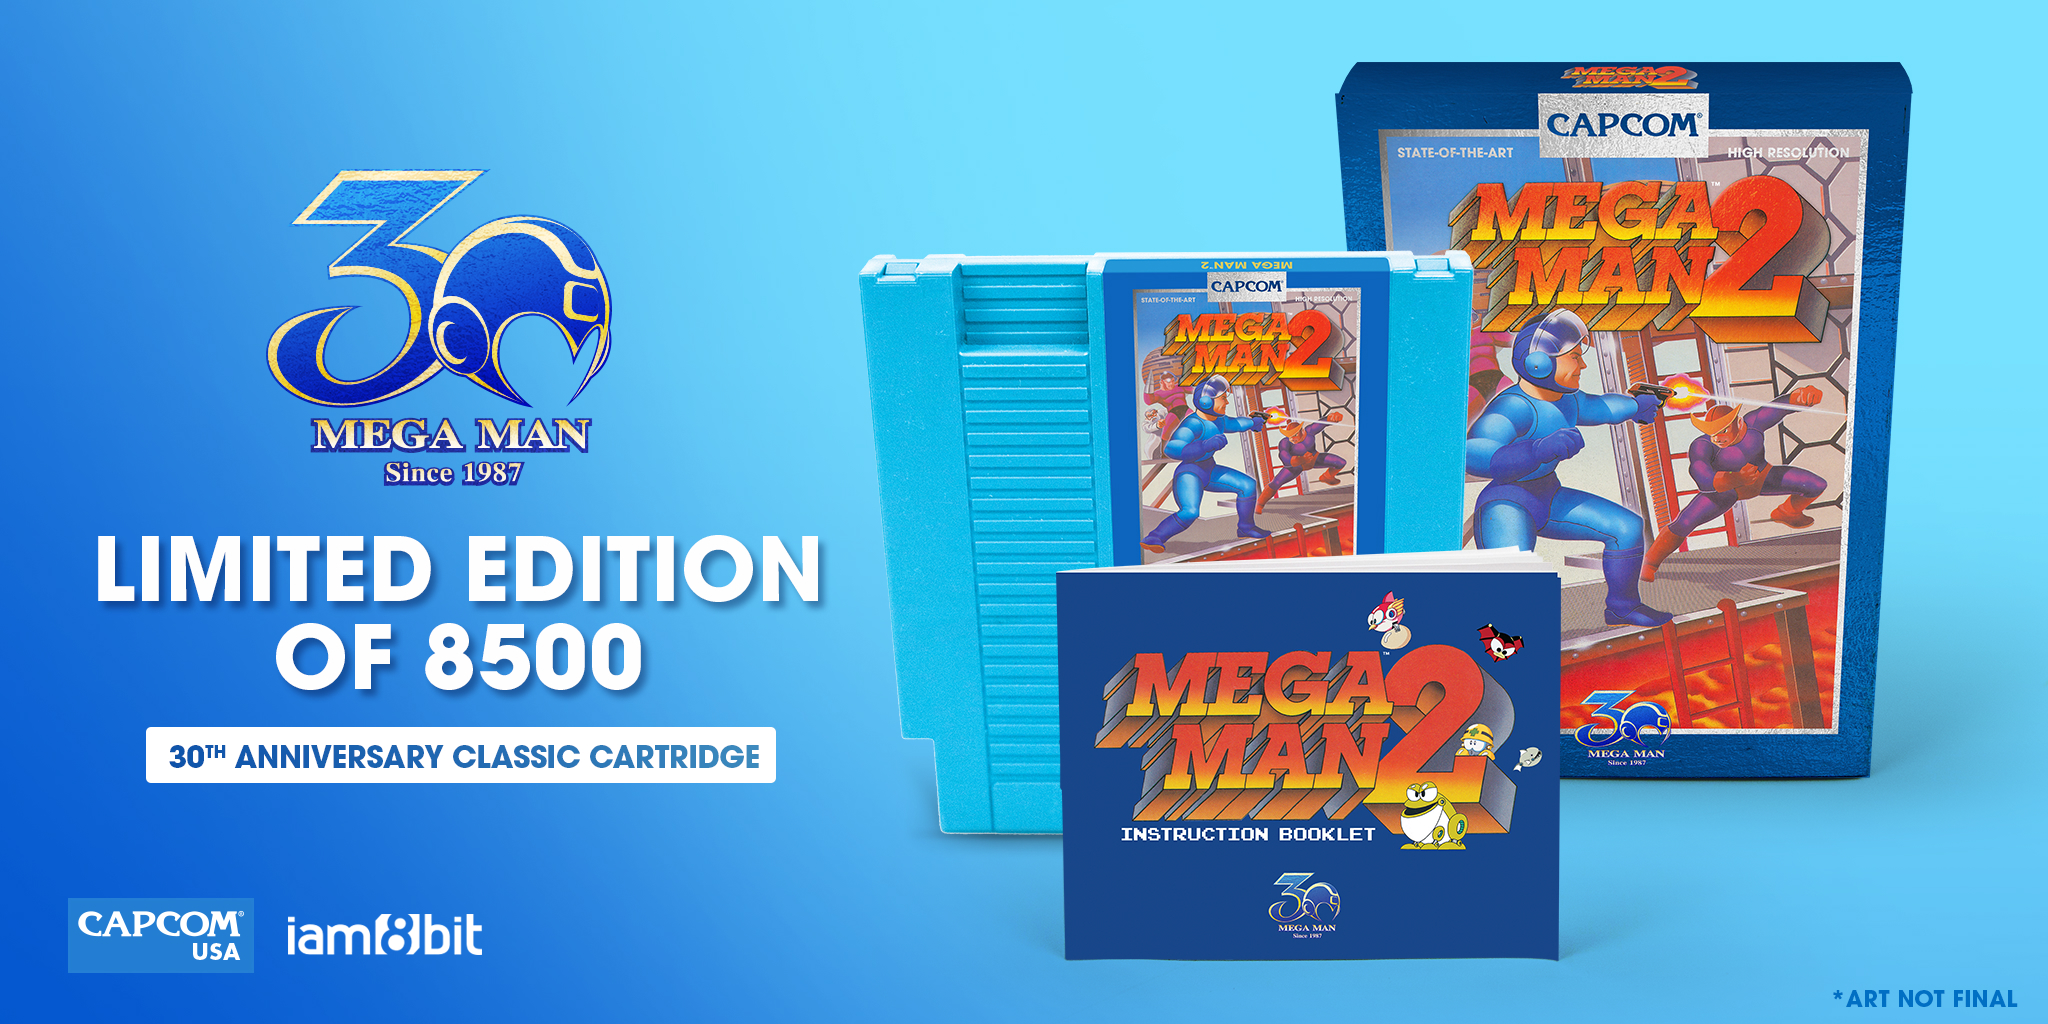 Cartridge Get! Mega Man 2 and Mega Man X get 30th anniversary reprints from Iam8bit